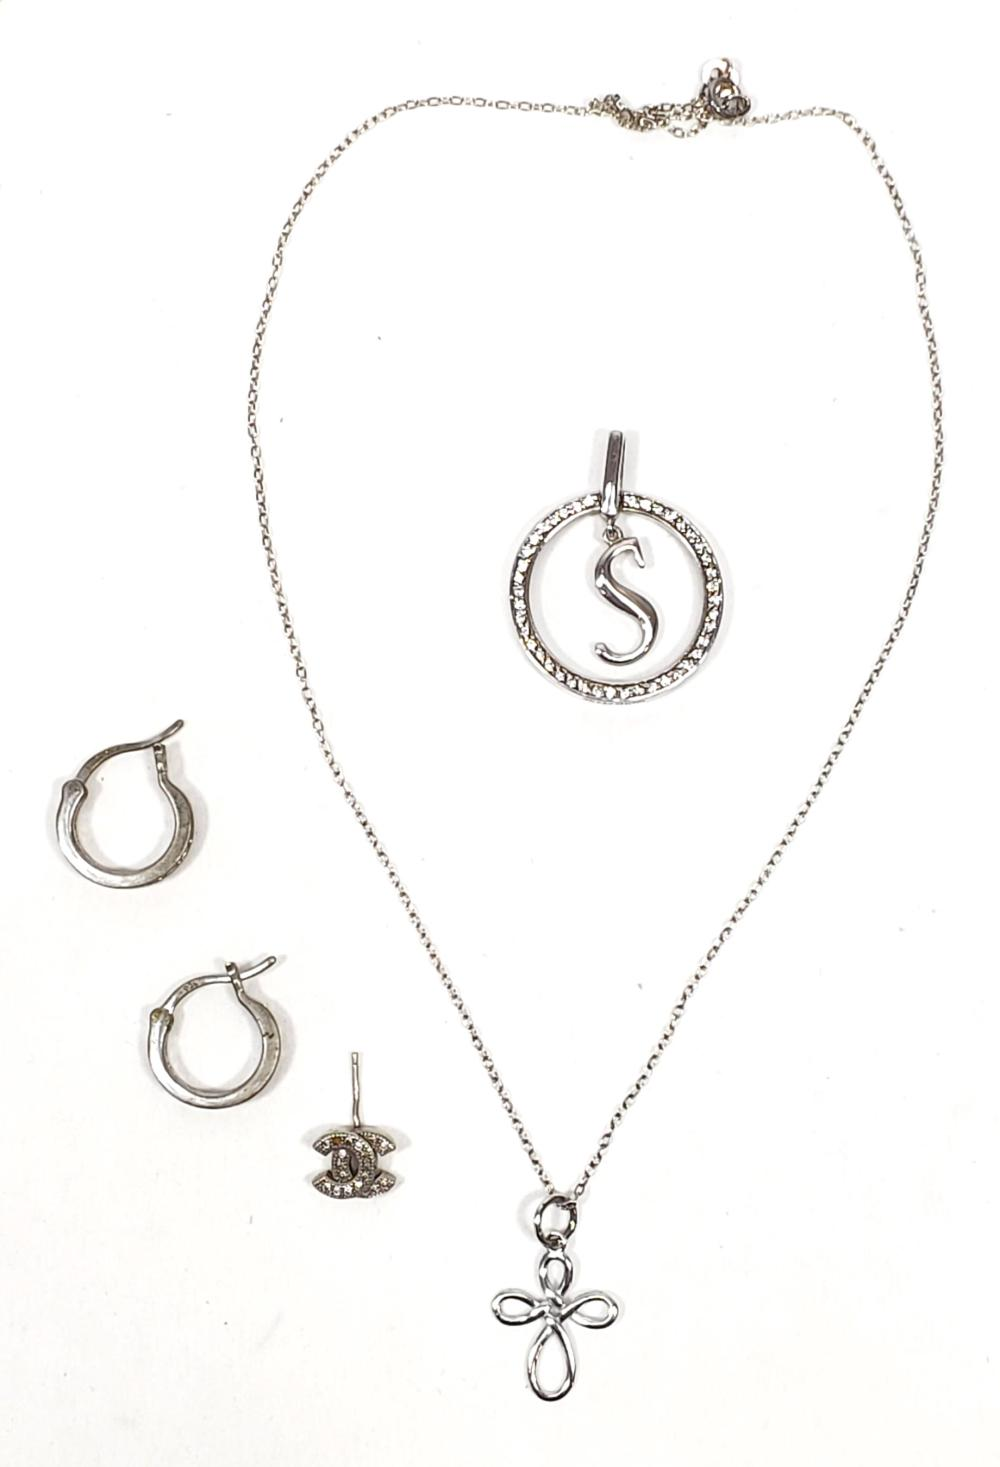 Sterling Silver Jewelry, Earrings, Necklaces